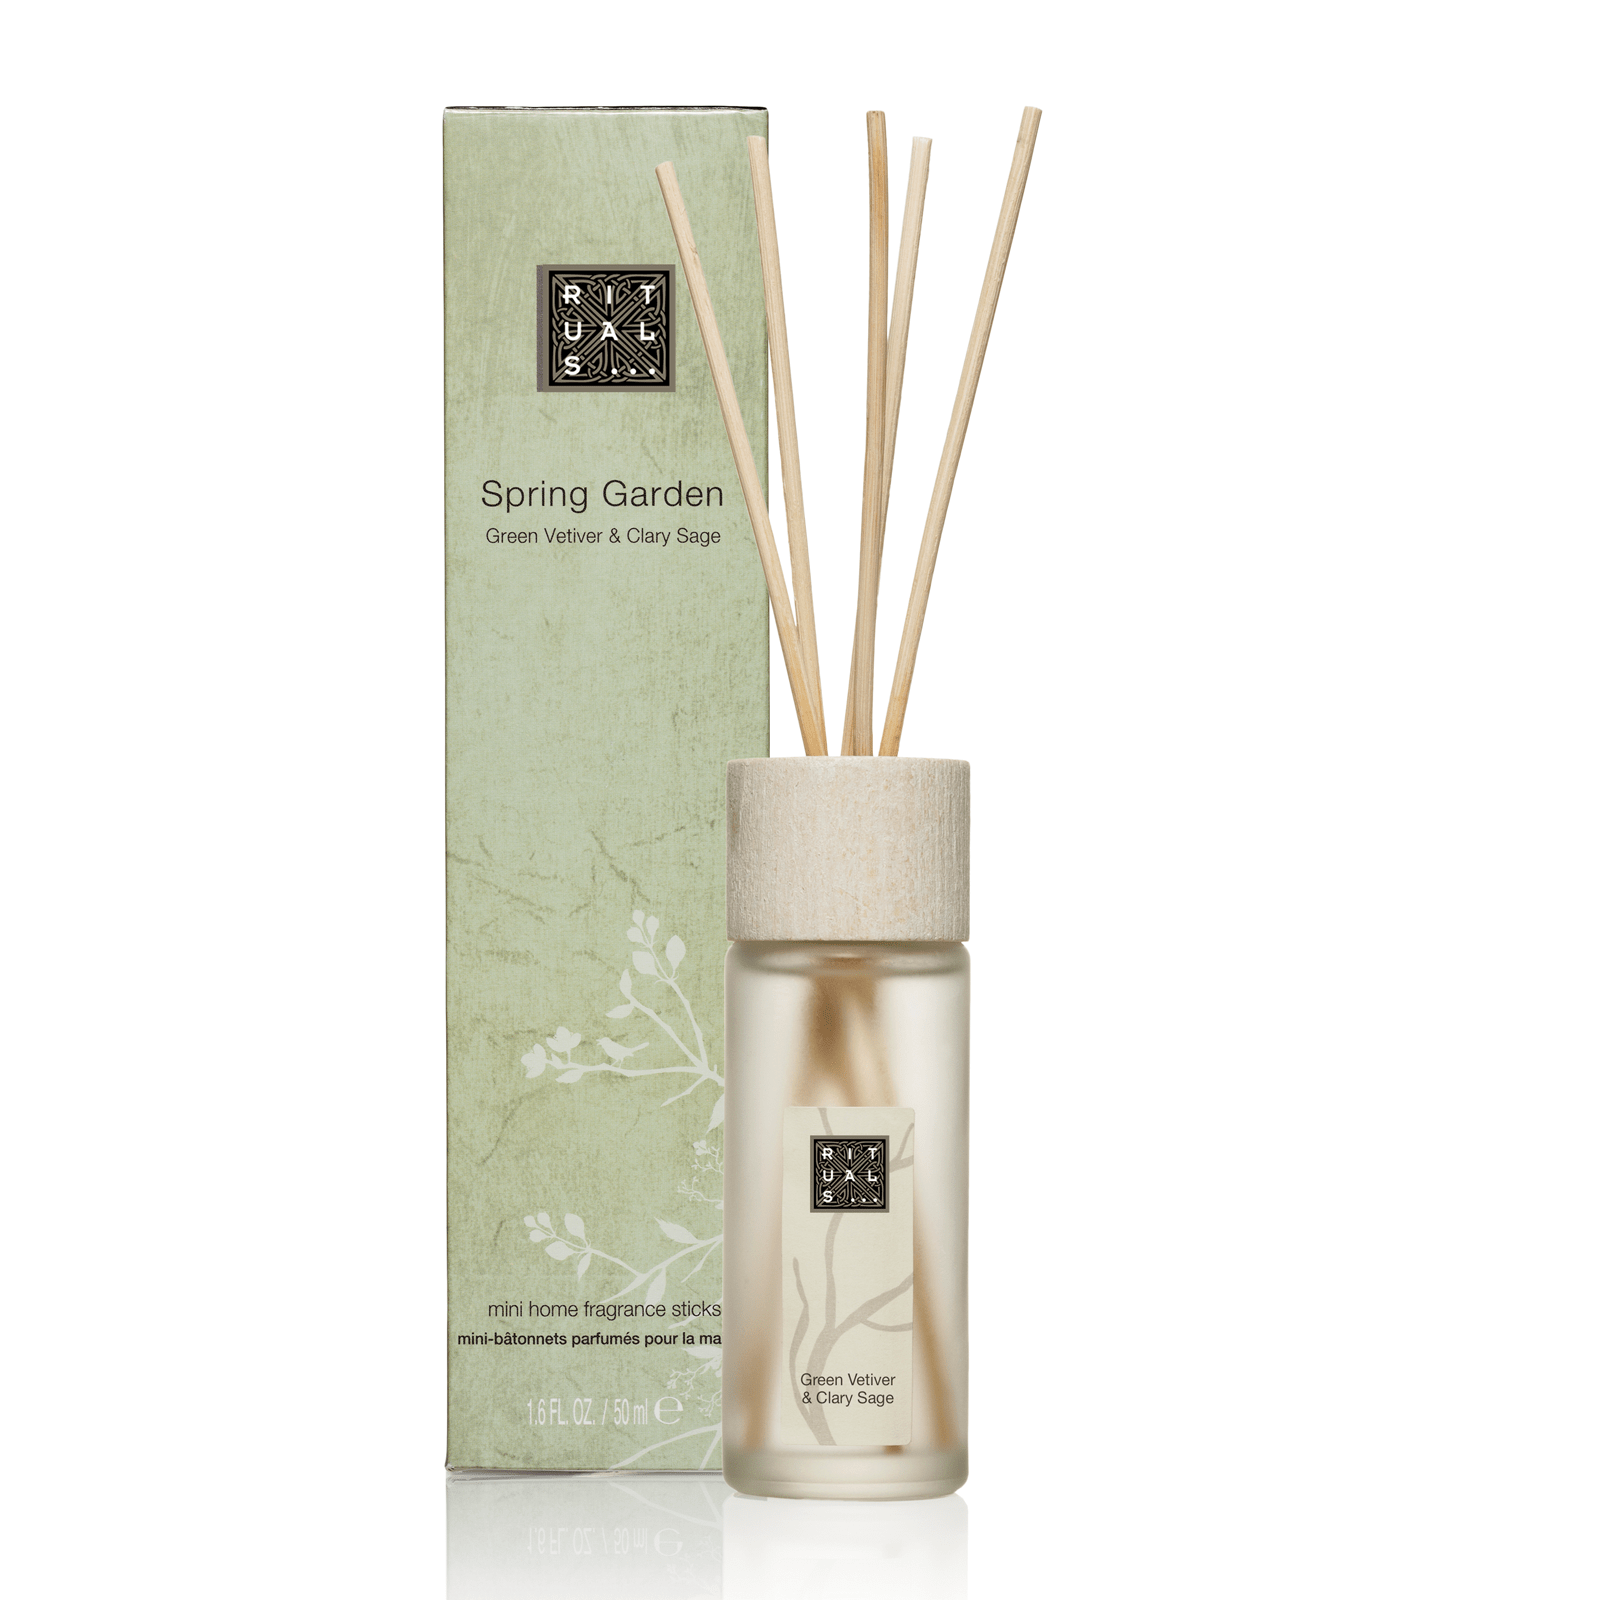 Diffuser Rituals Top 10 Home Fragrance Diffusers | The Luxe Lifestyle